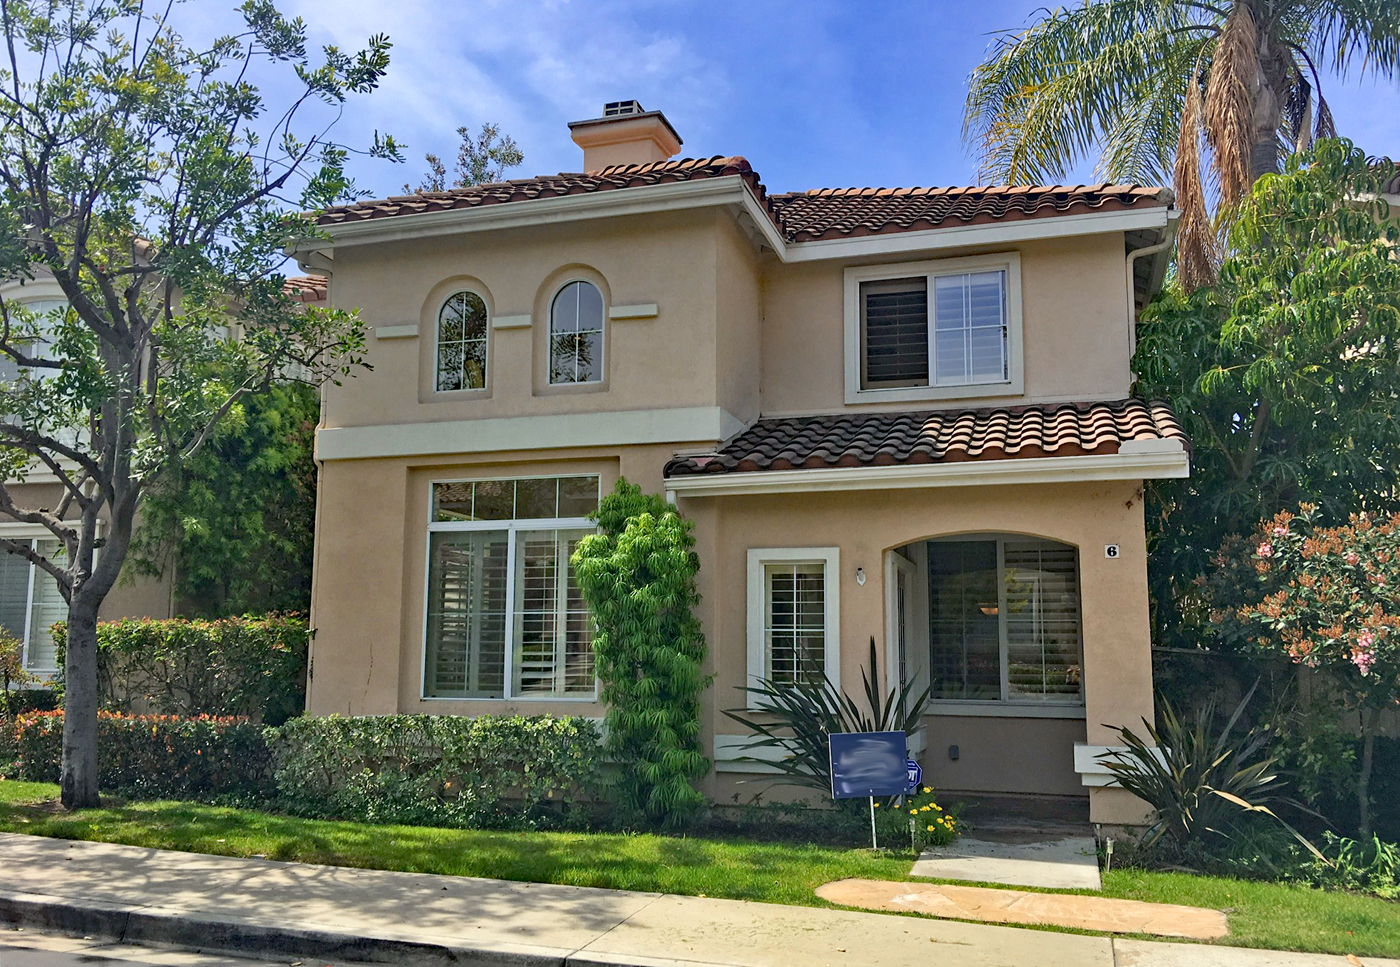 Charming Detached Home in Rancho Santa Margarita Under $650,000!